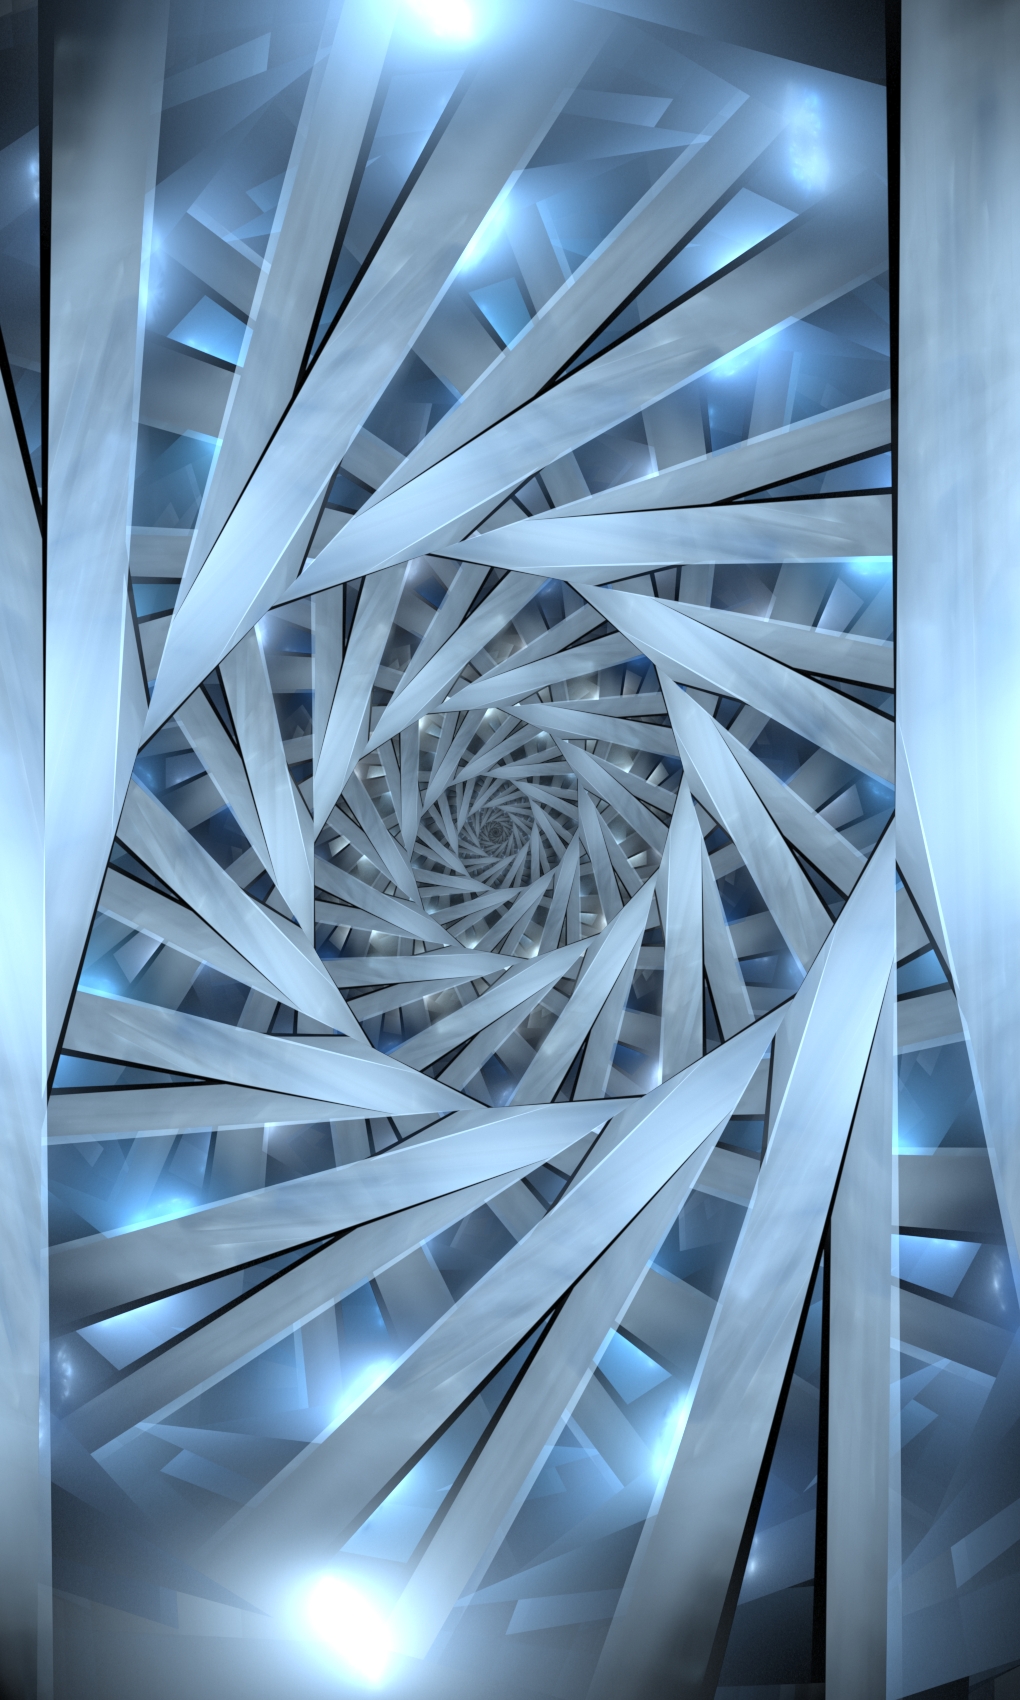 stairway fractal illustrations